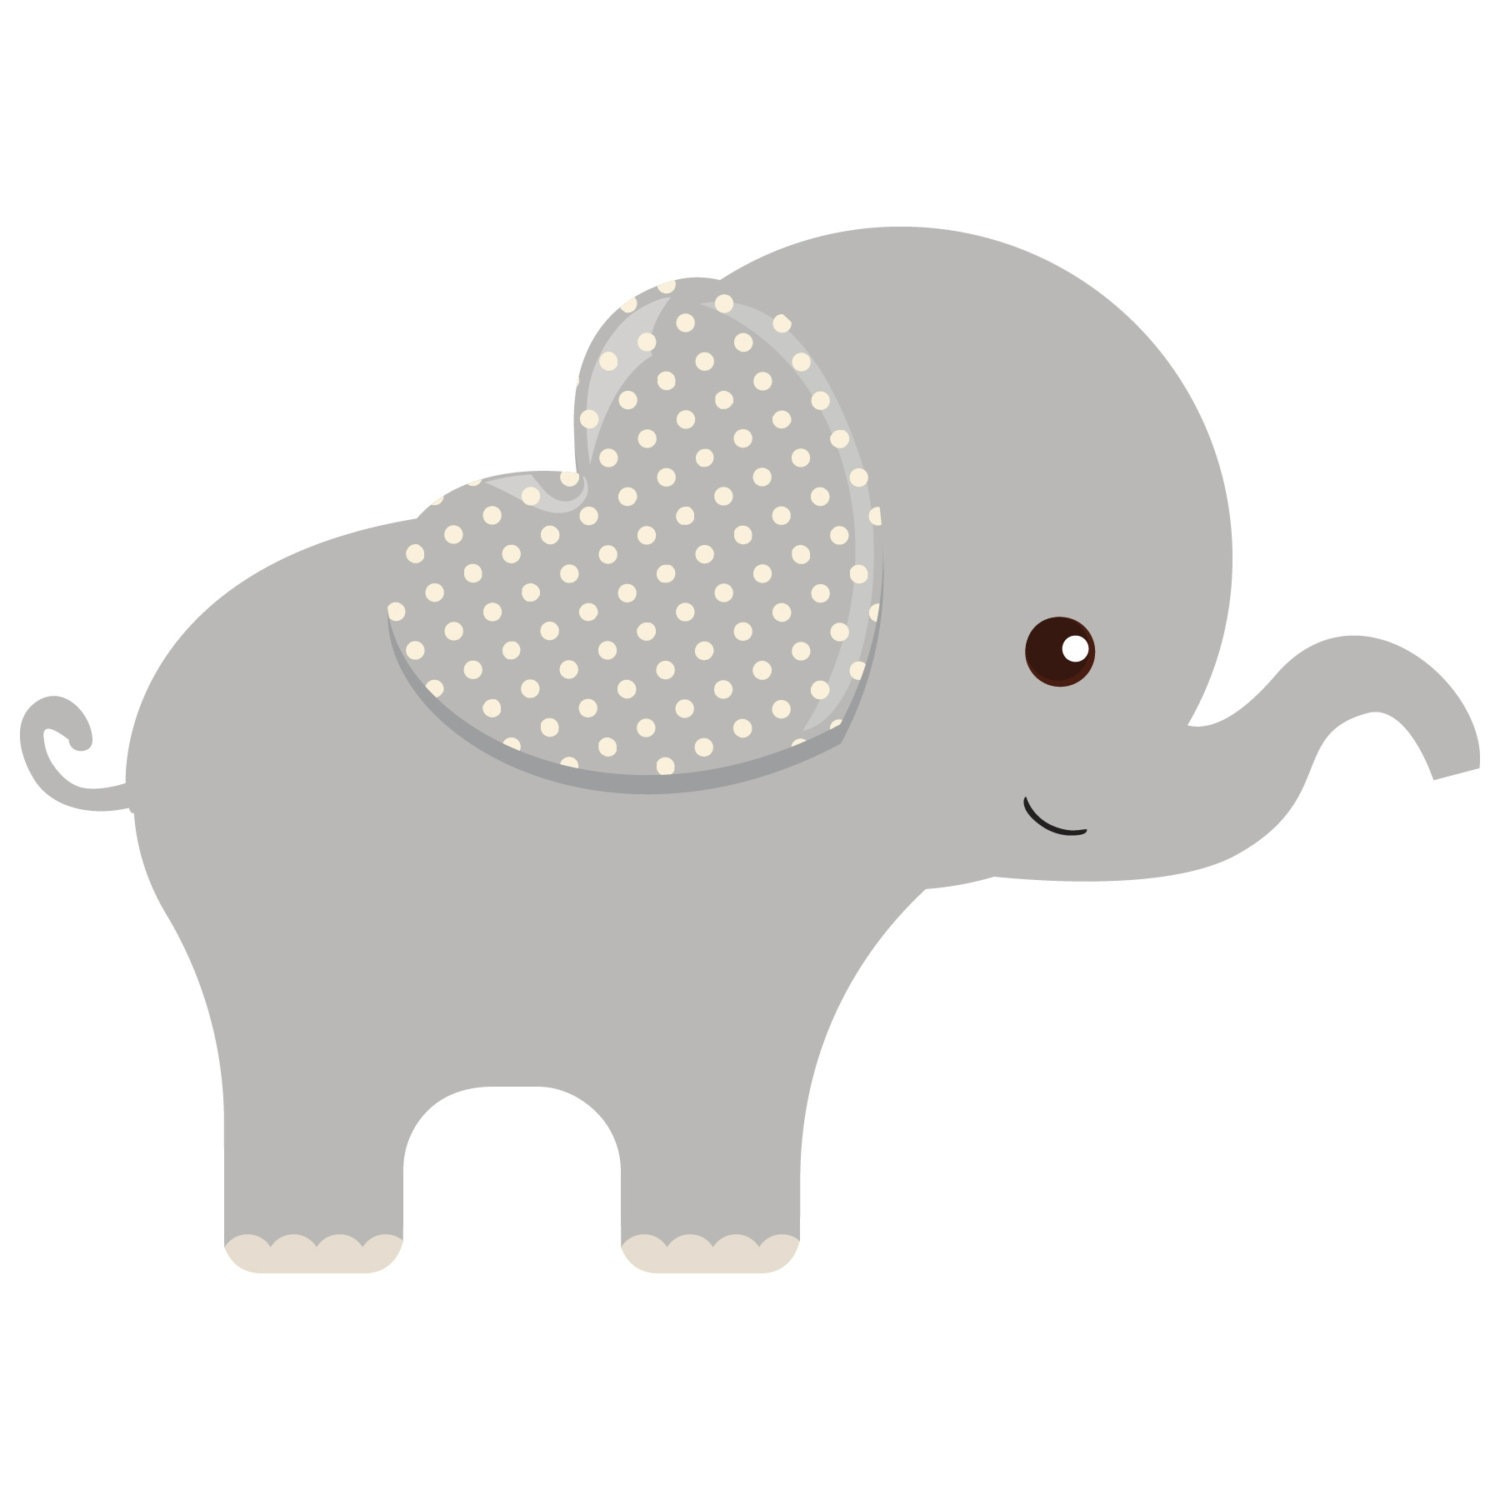 Baby clipart letters ripping. Elephant clip art elephent jpg freeuse